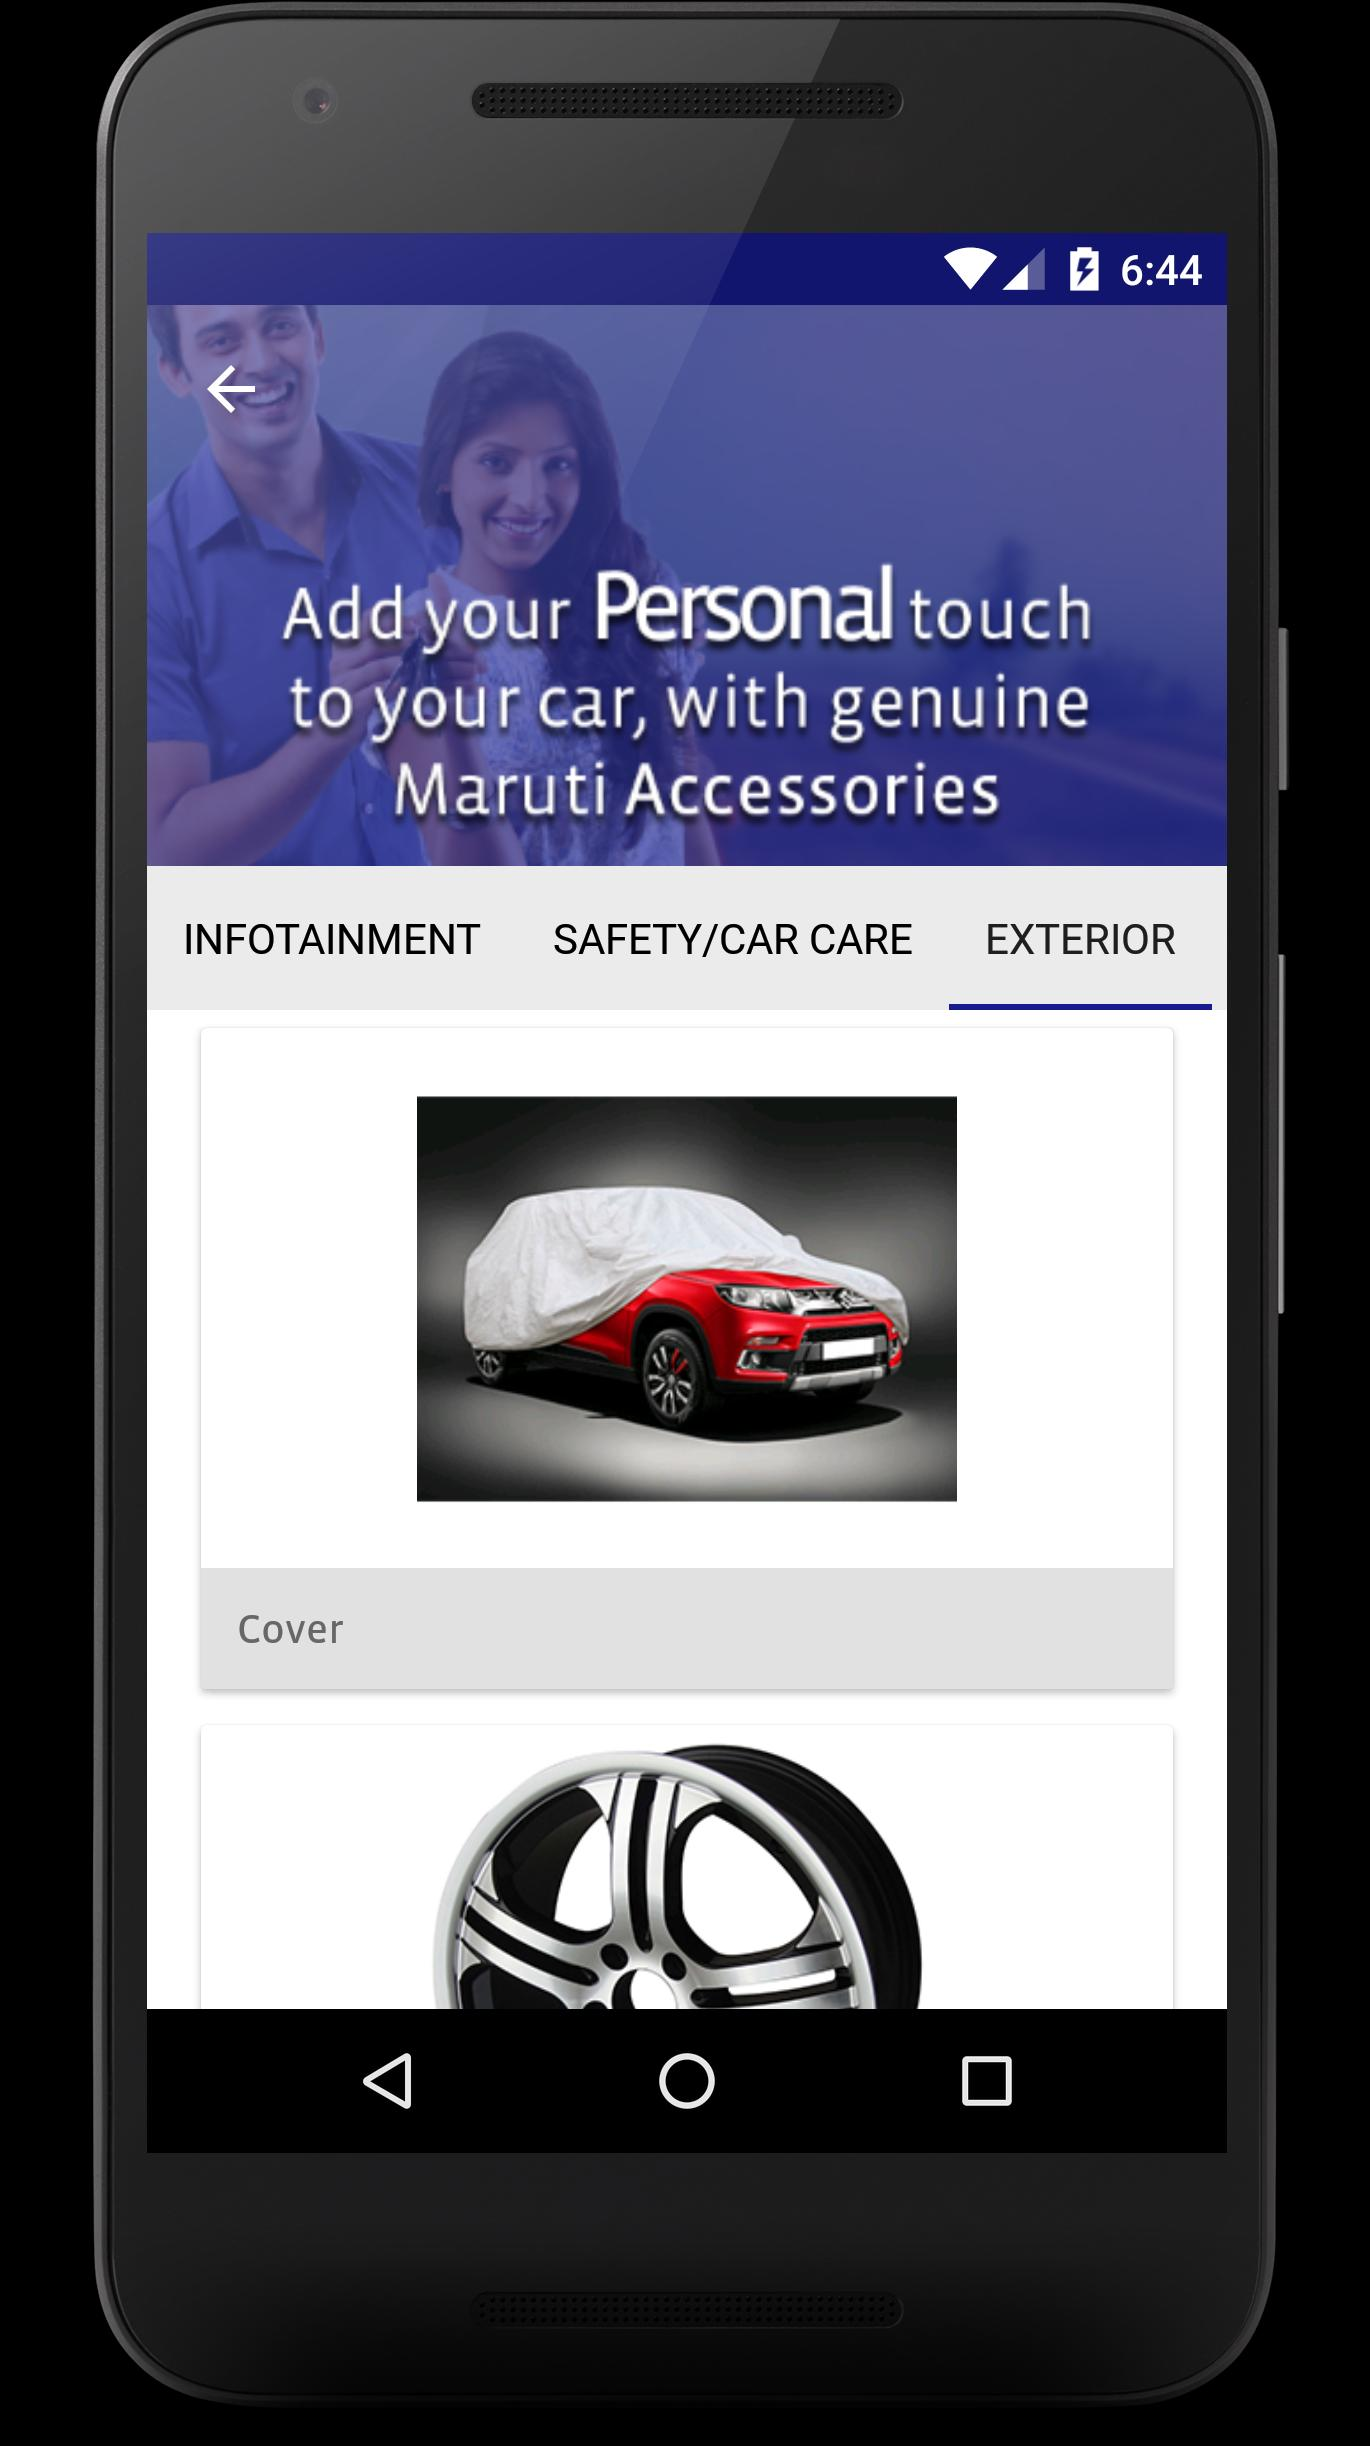 Pre Owned Cars >> Maruti Suzuki True Value Buy Sell Pre Owned Cars For